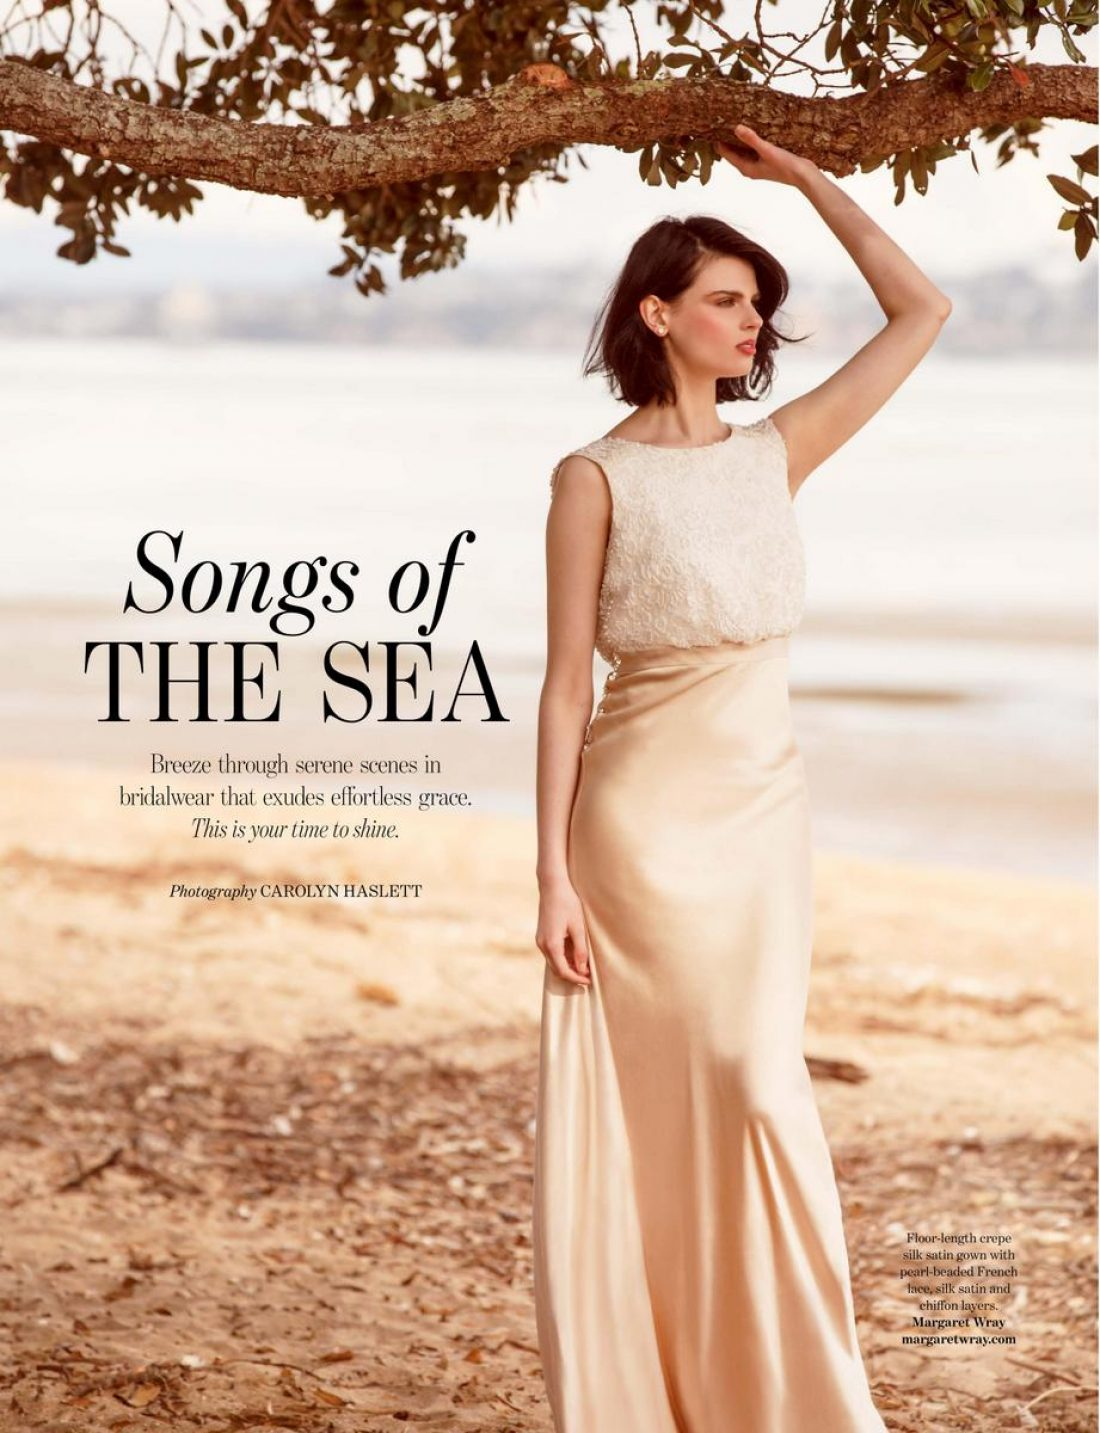 Lily photographed by Carolyn Haslett for NZ Weddings Magazine. Hair & Makeup by Lisa Welch , Assist: Frances Carter, Styling Assist: Elizabeth Davies